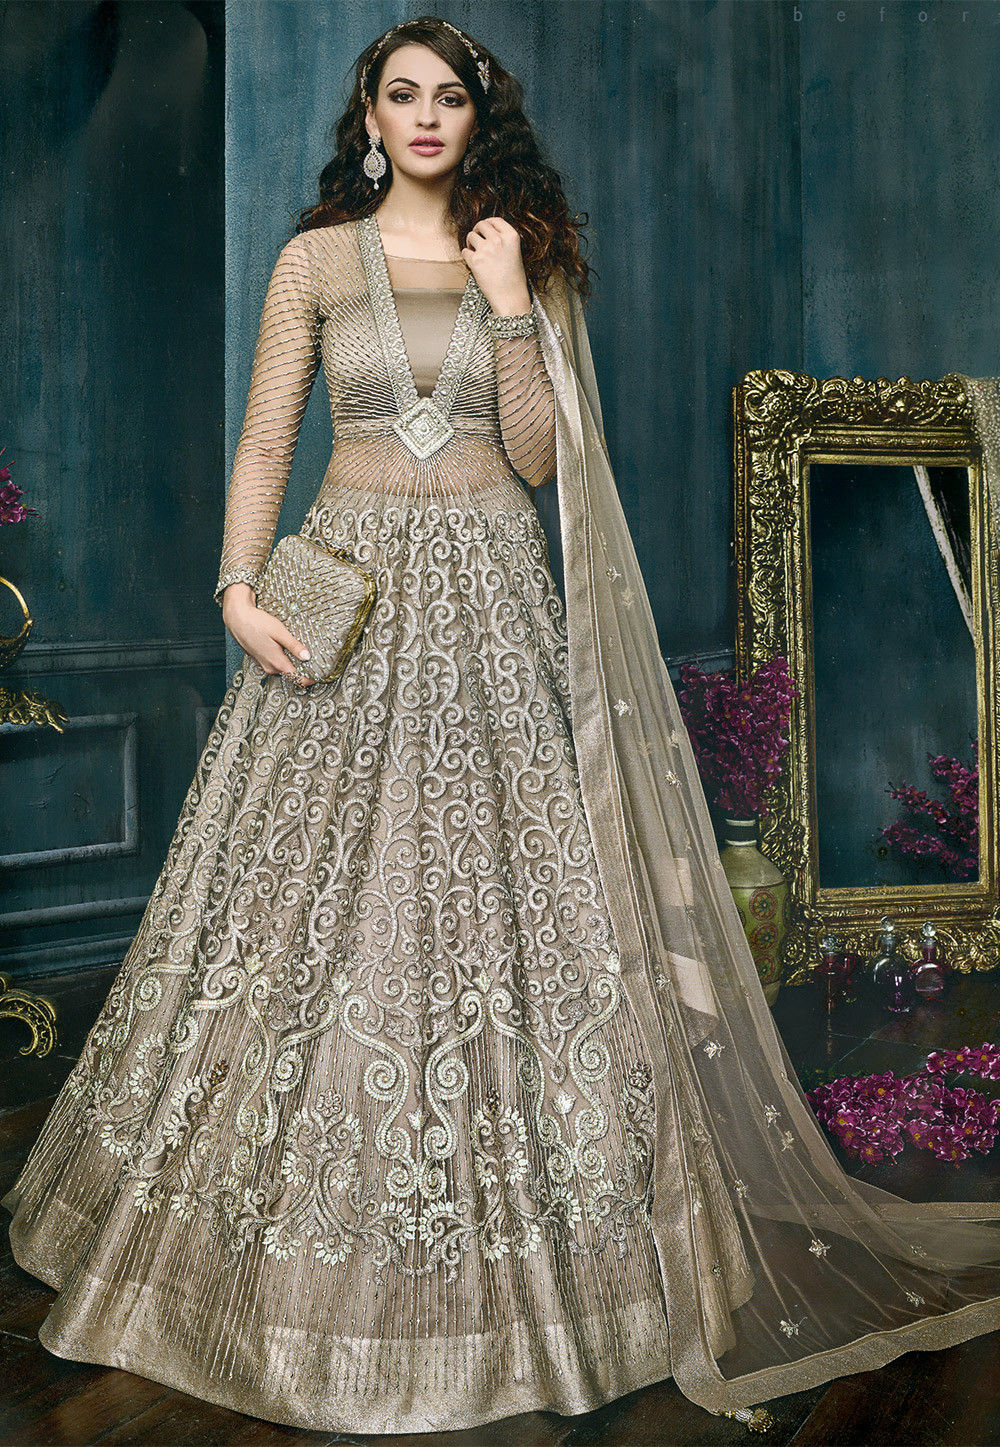 Wedding Lehengas | Buy Indian Wedding Lehenga Choli and Designs Online